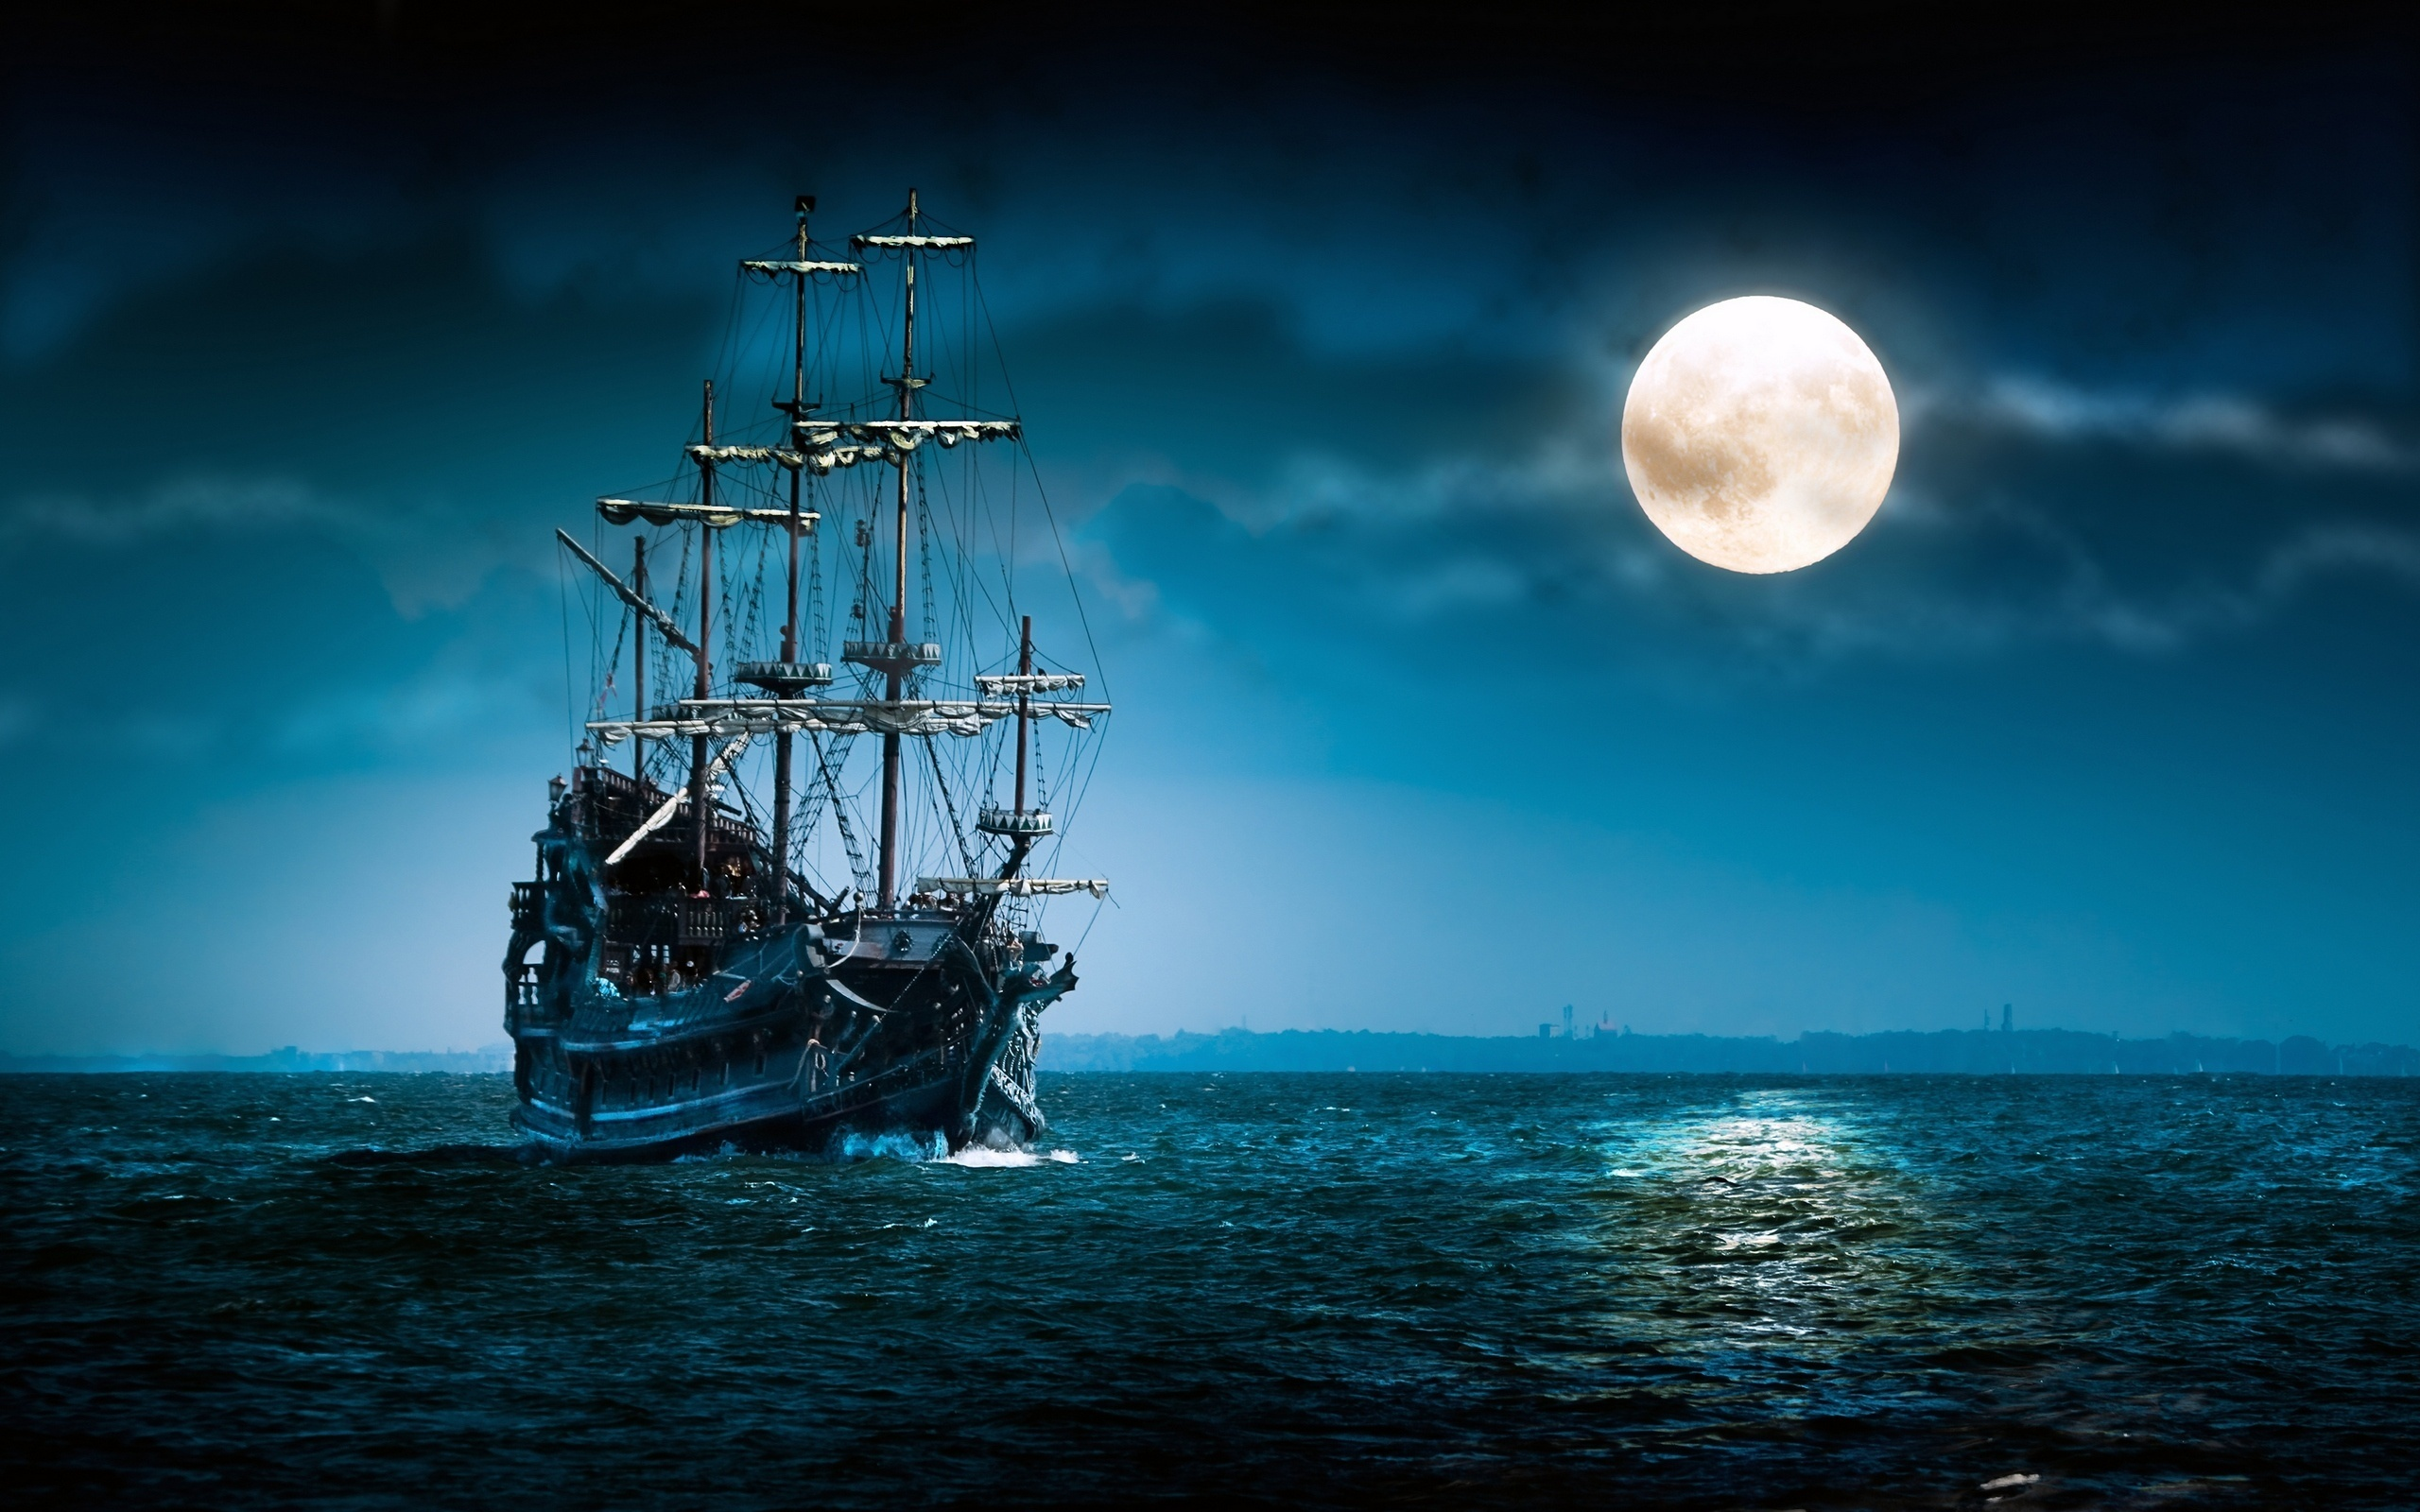 ocean night mood moon wallpaper 2560x1600 133817 WallpaperUP 2560x1600